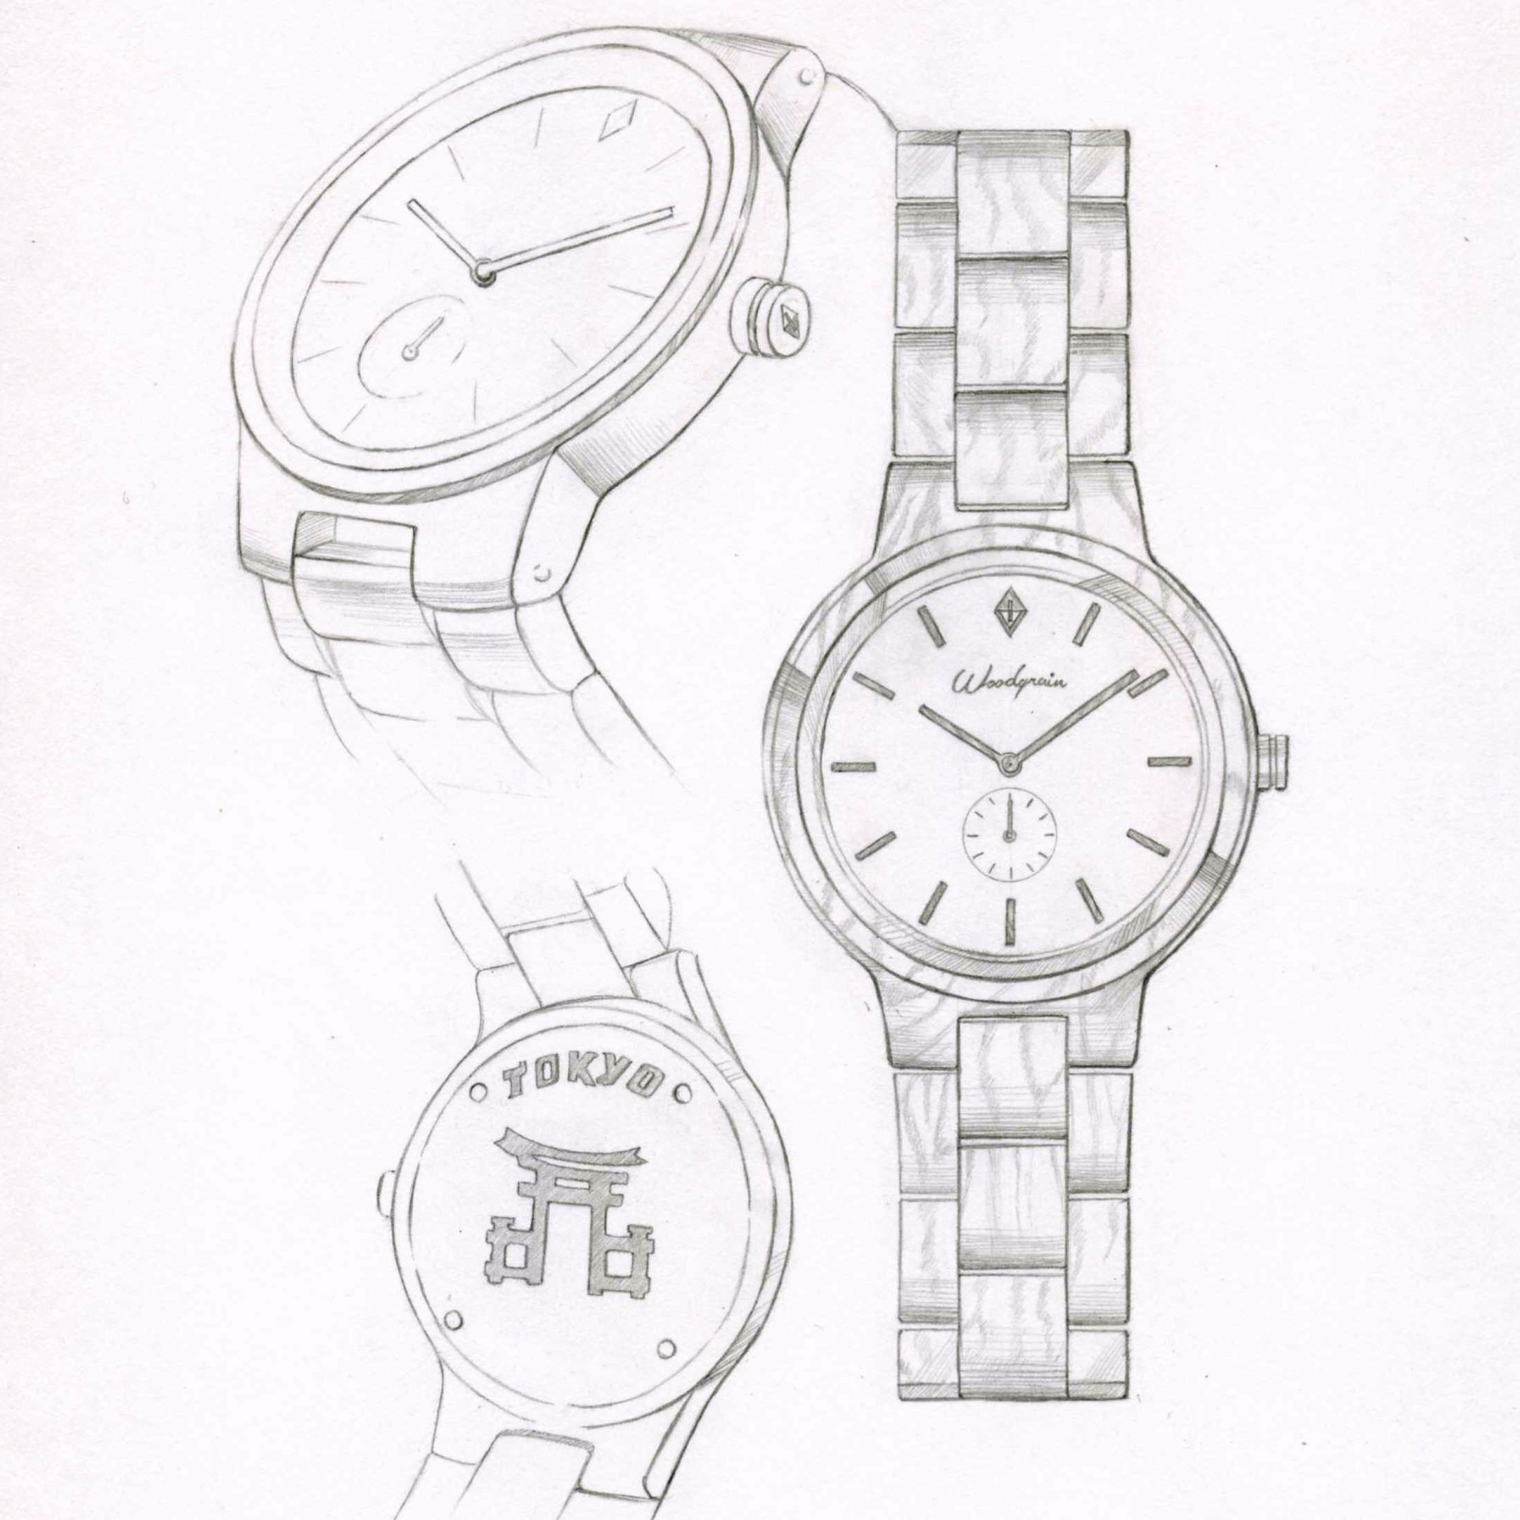 drawn chain watch getdrawings pocket use com personal watches drawing free at for